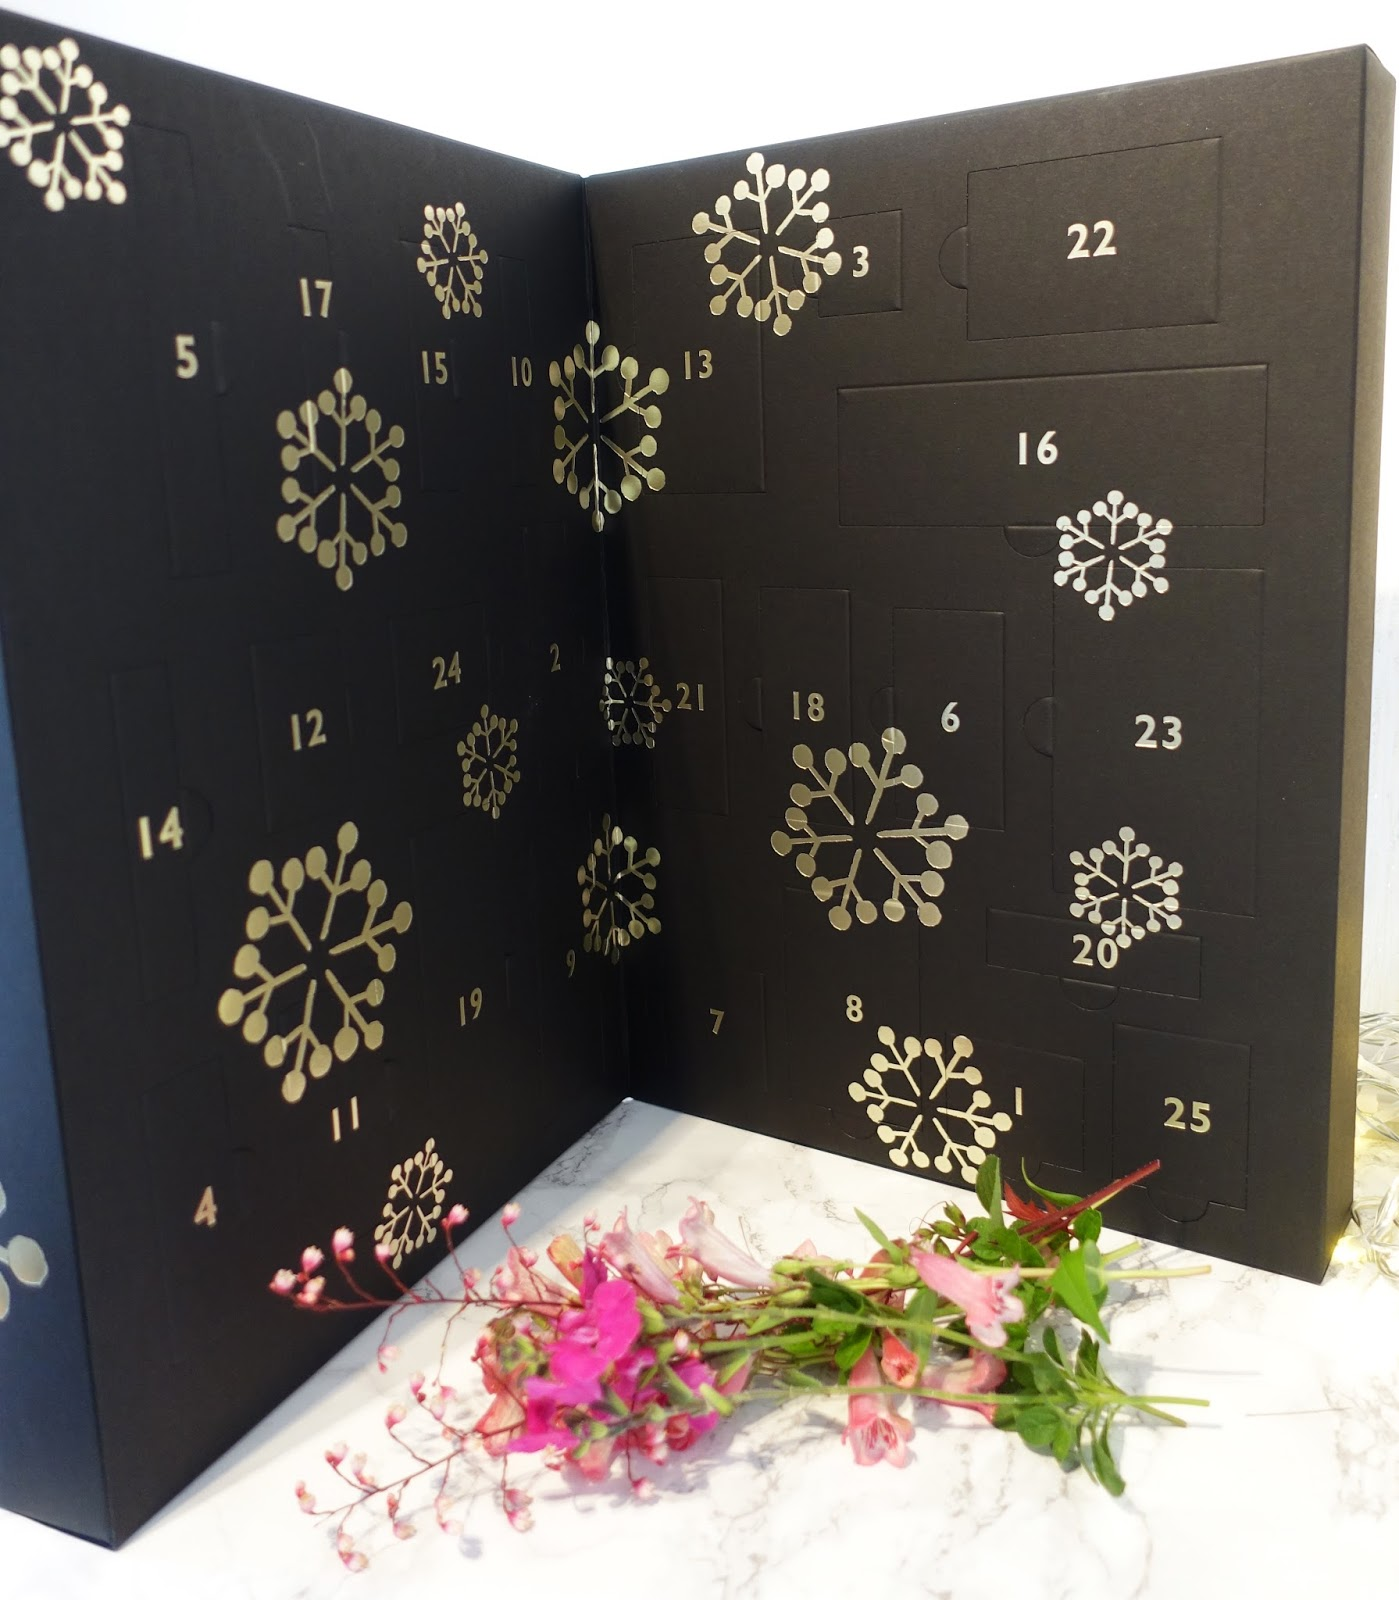 Image showing the John Lewis Beauty Advent Calendar 2017 as featured by Is This Mutton blog for the over 40s